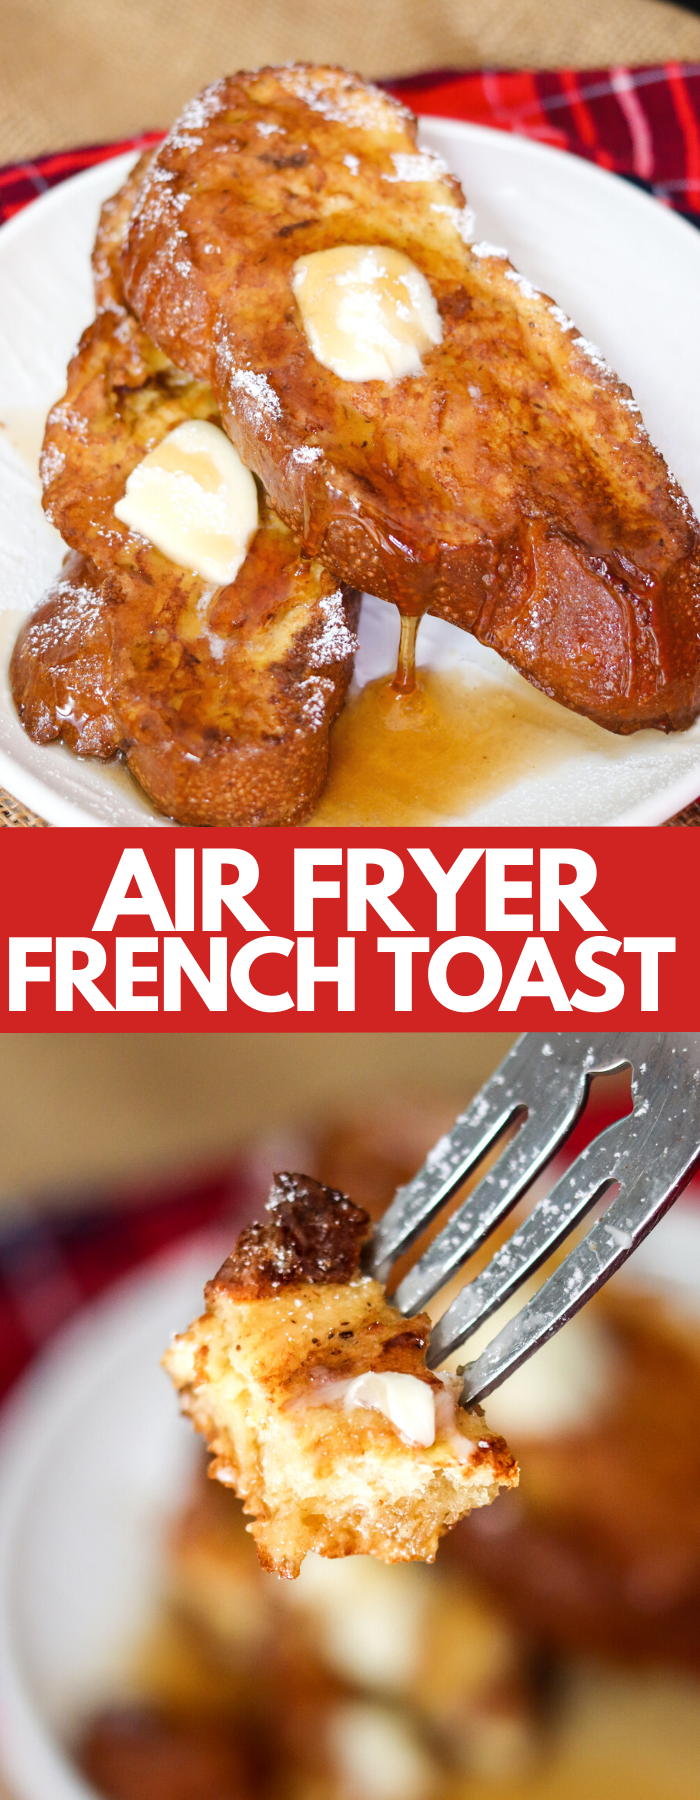 Air Fryer French Toast is quick, easy, and delicious! It takes barely any time to prep and cooks rapidly! Make it now, or follow the easy freezer directions! This is be a breakfast recipe staple!